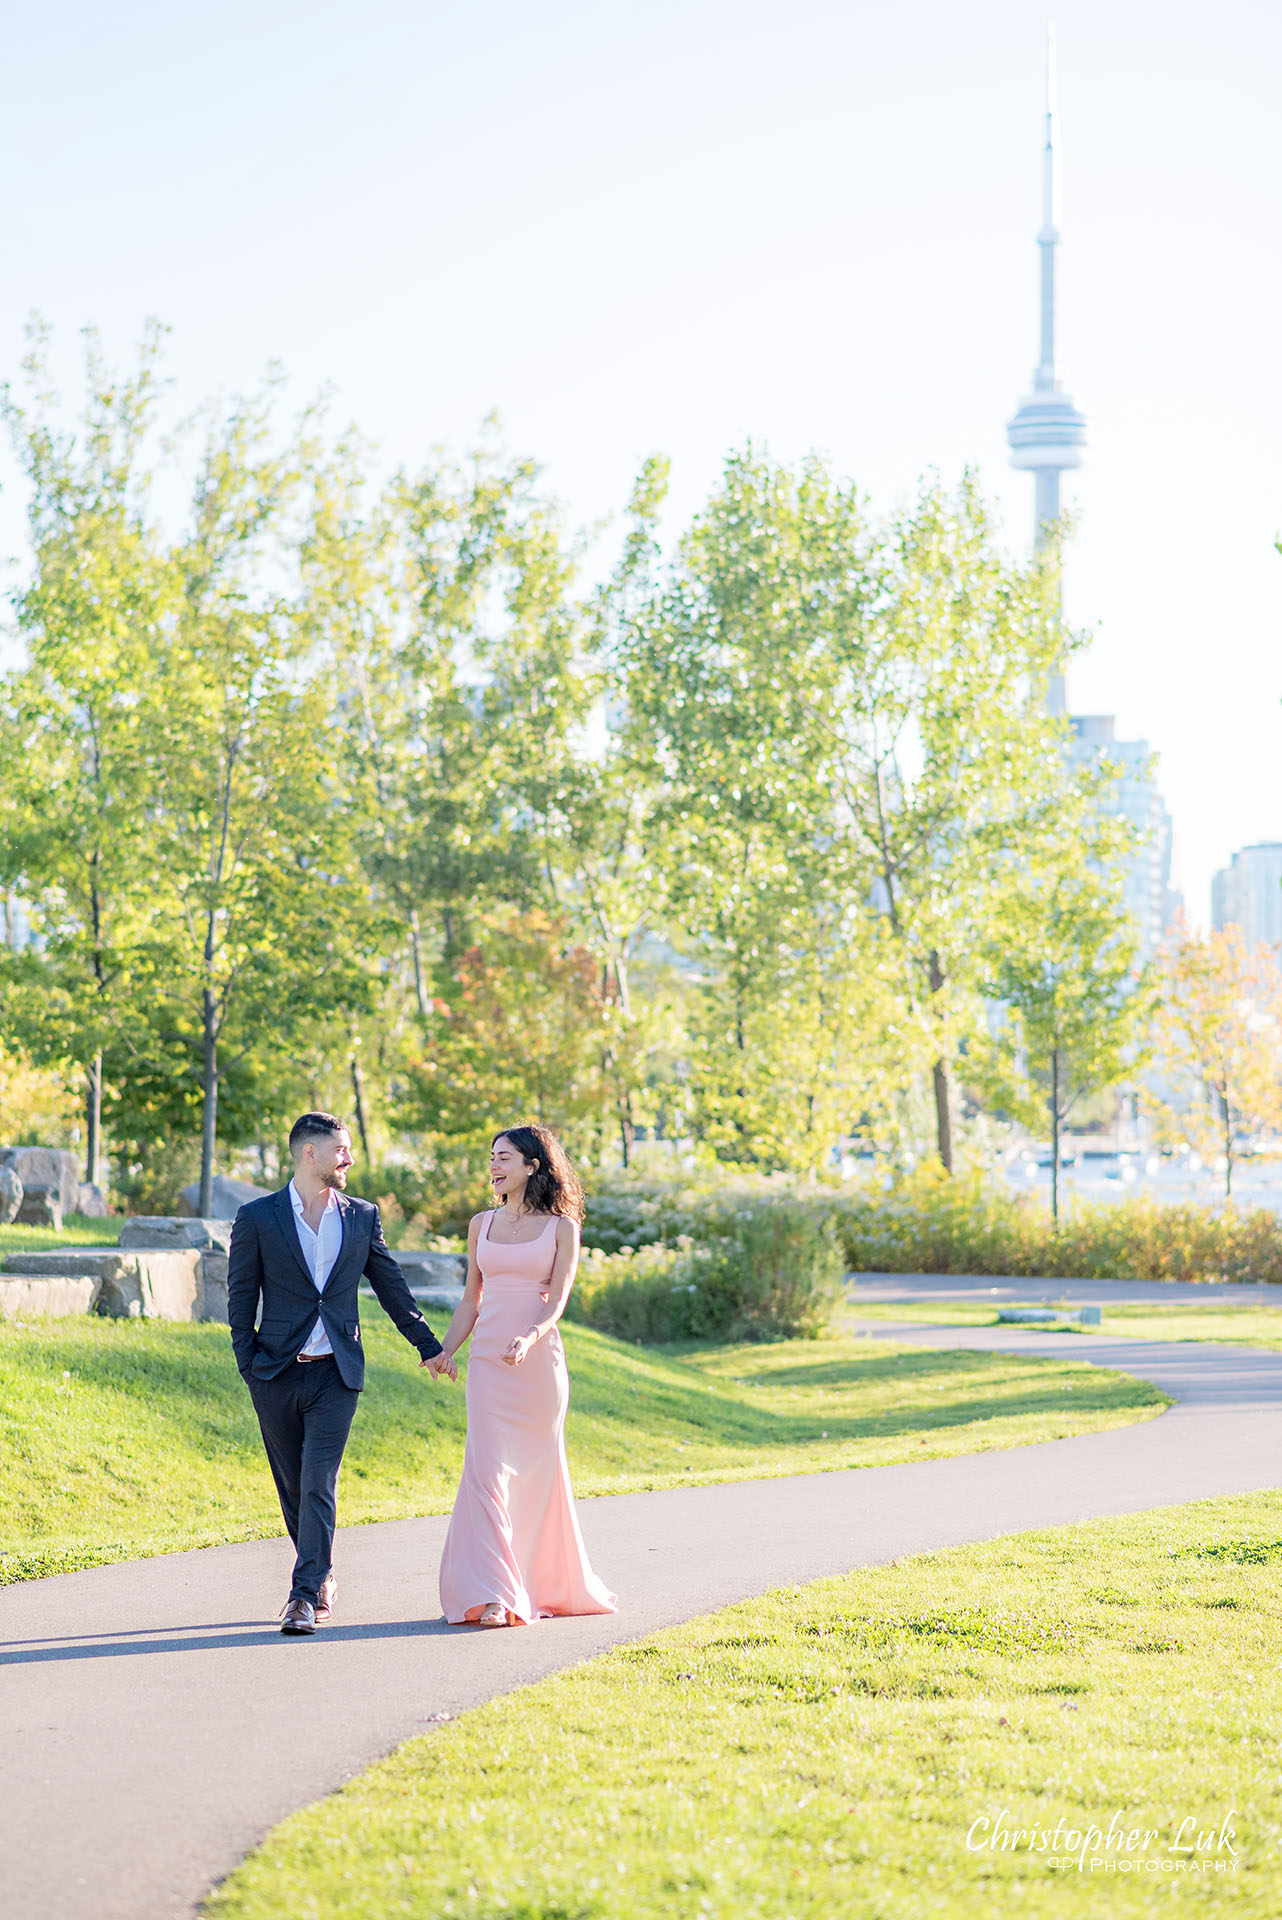 Christopher Luk Trillium Park Ontario Place Waterfront Engagement Session Toronto Wedding Photographer Bride Groom Natural Candid Photojournalistic CN Tower Skyline Background Trees Sunrise Walkway Path Trail Vertical Portrait